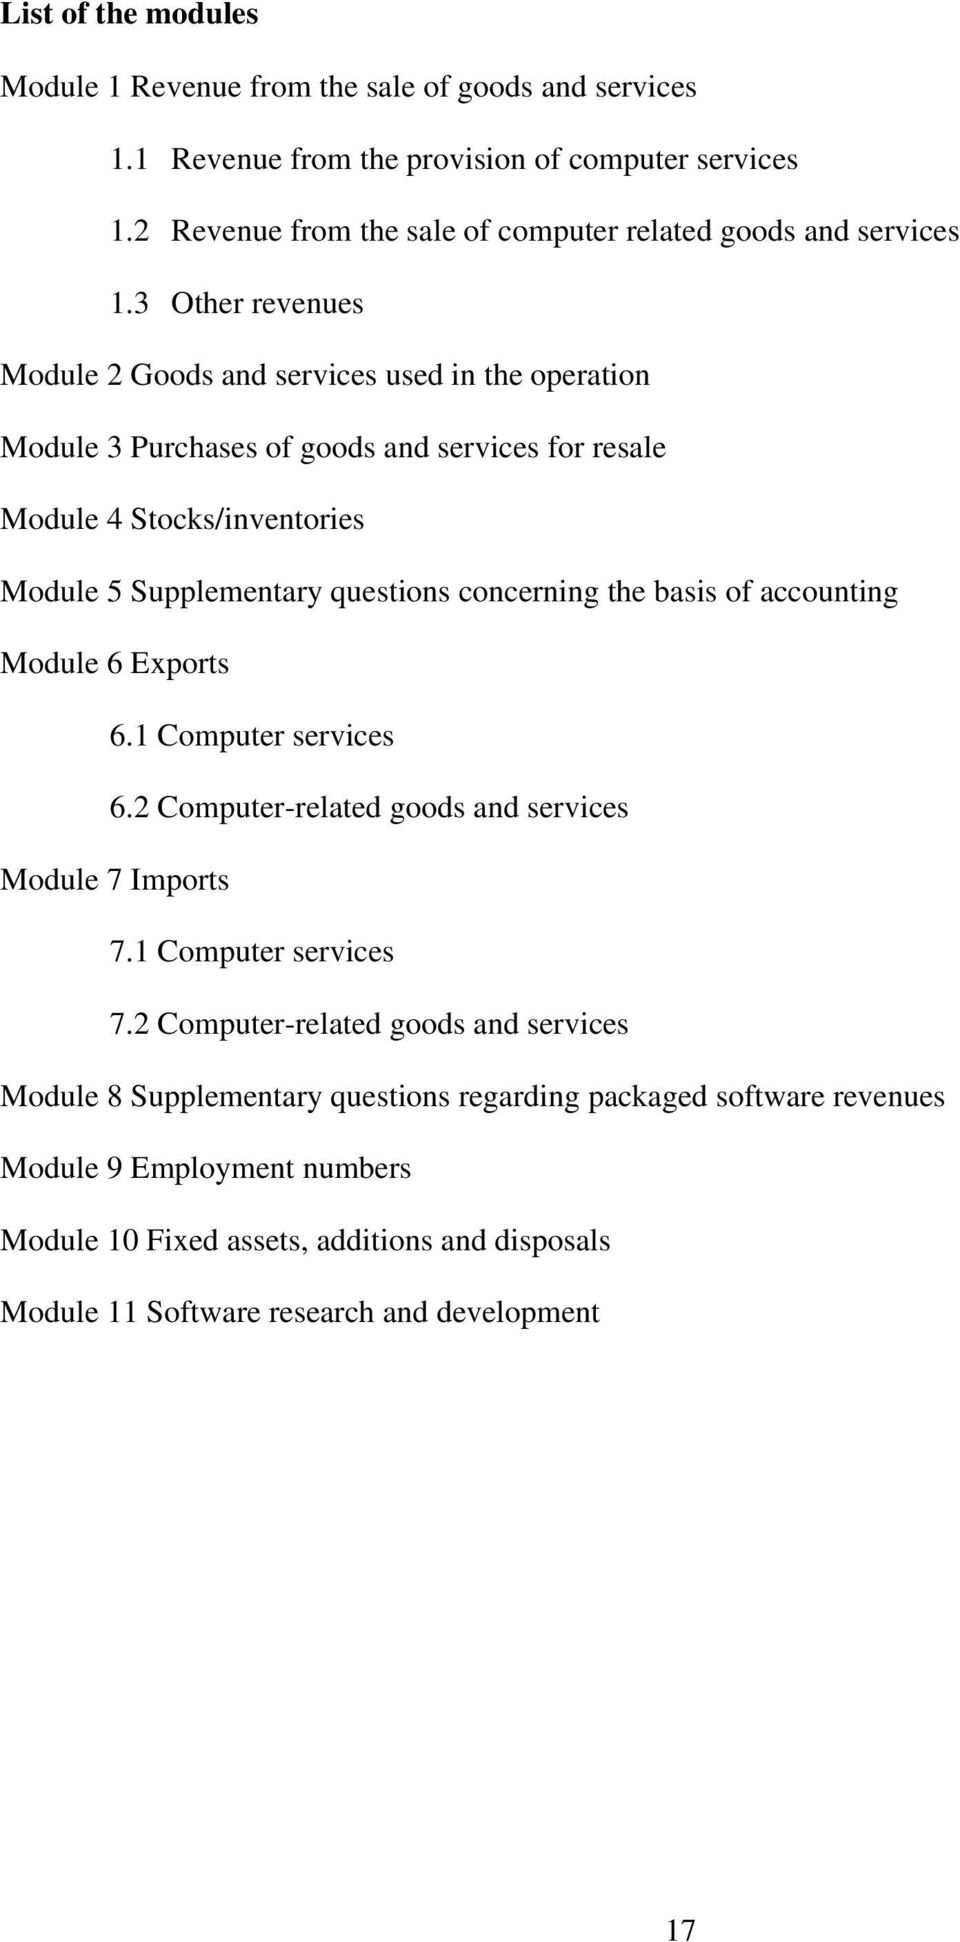 3 Other revenues Module 2 Goods and services used in the operation Module 3 Purchases of goods and services for resale Module 4 Stocks/inventories Module 5 Supplementary questions